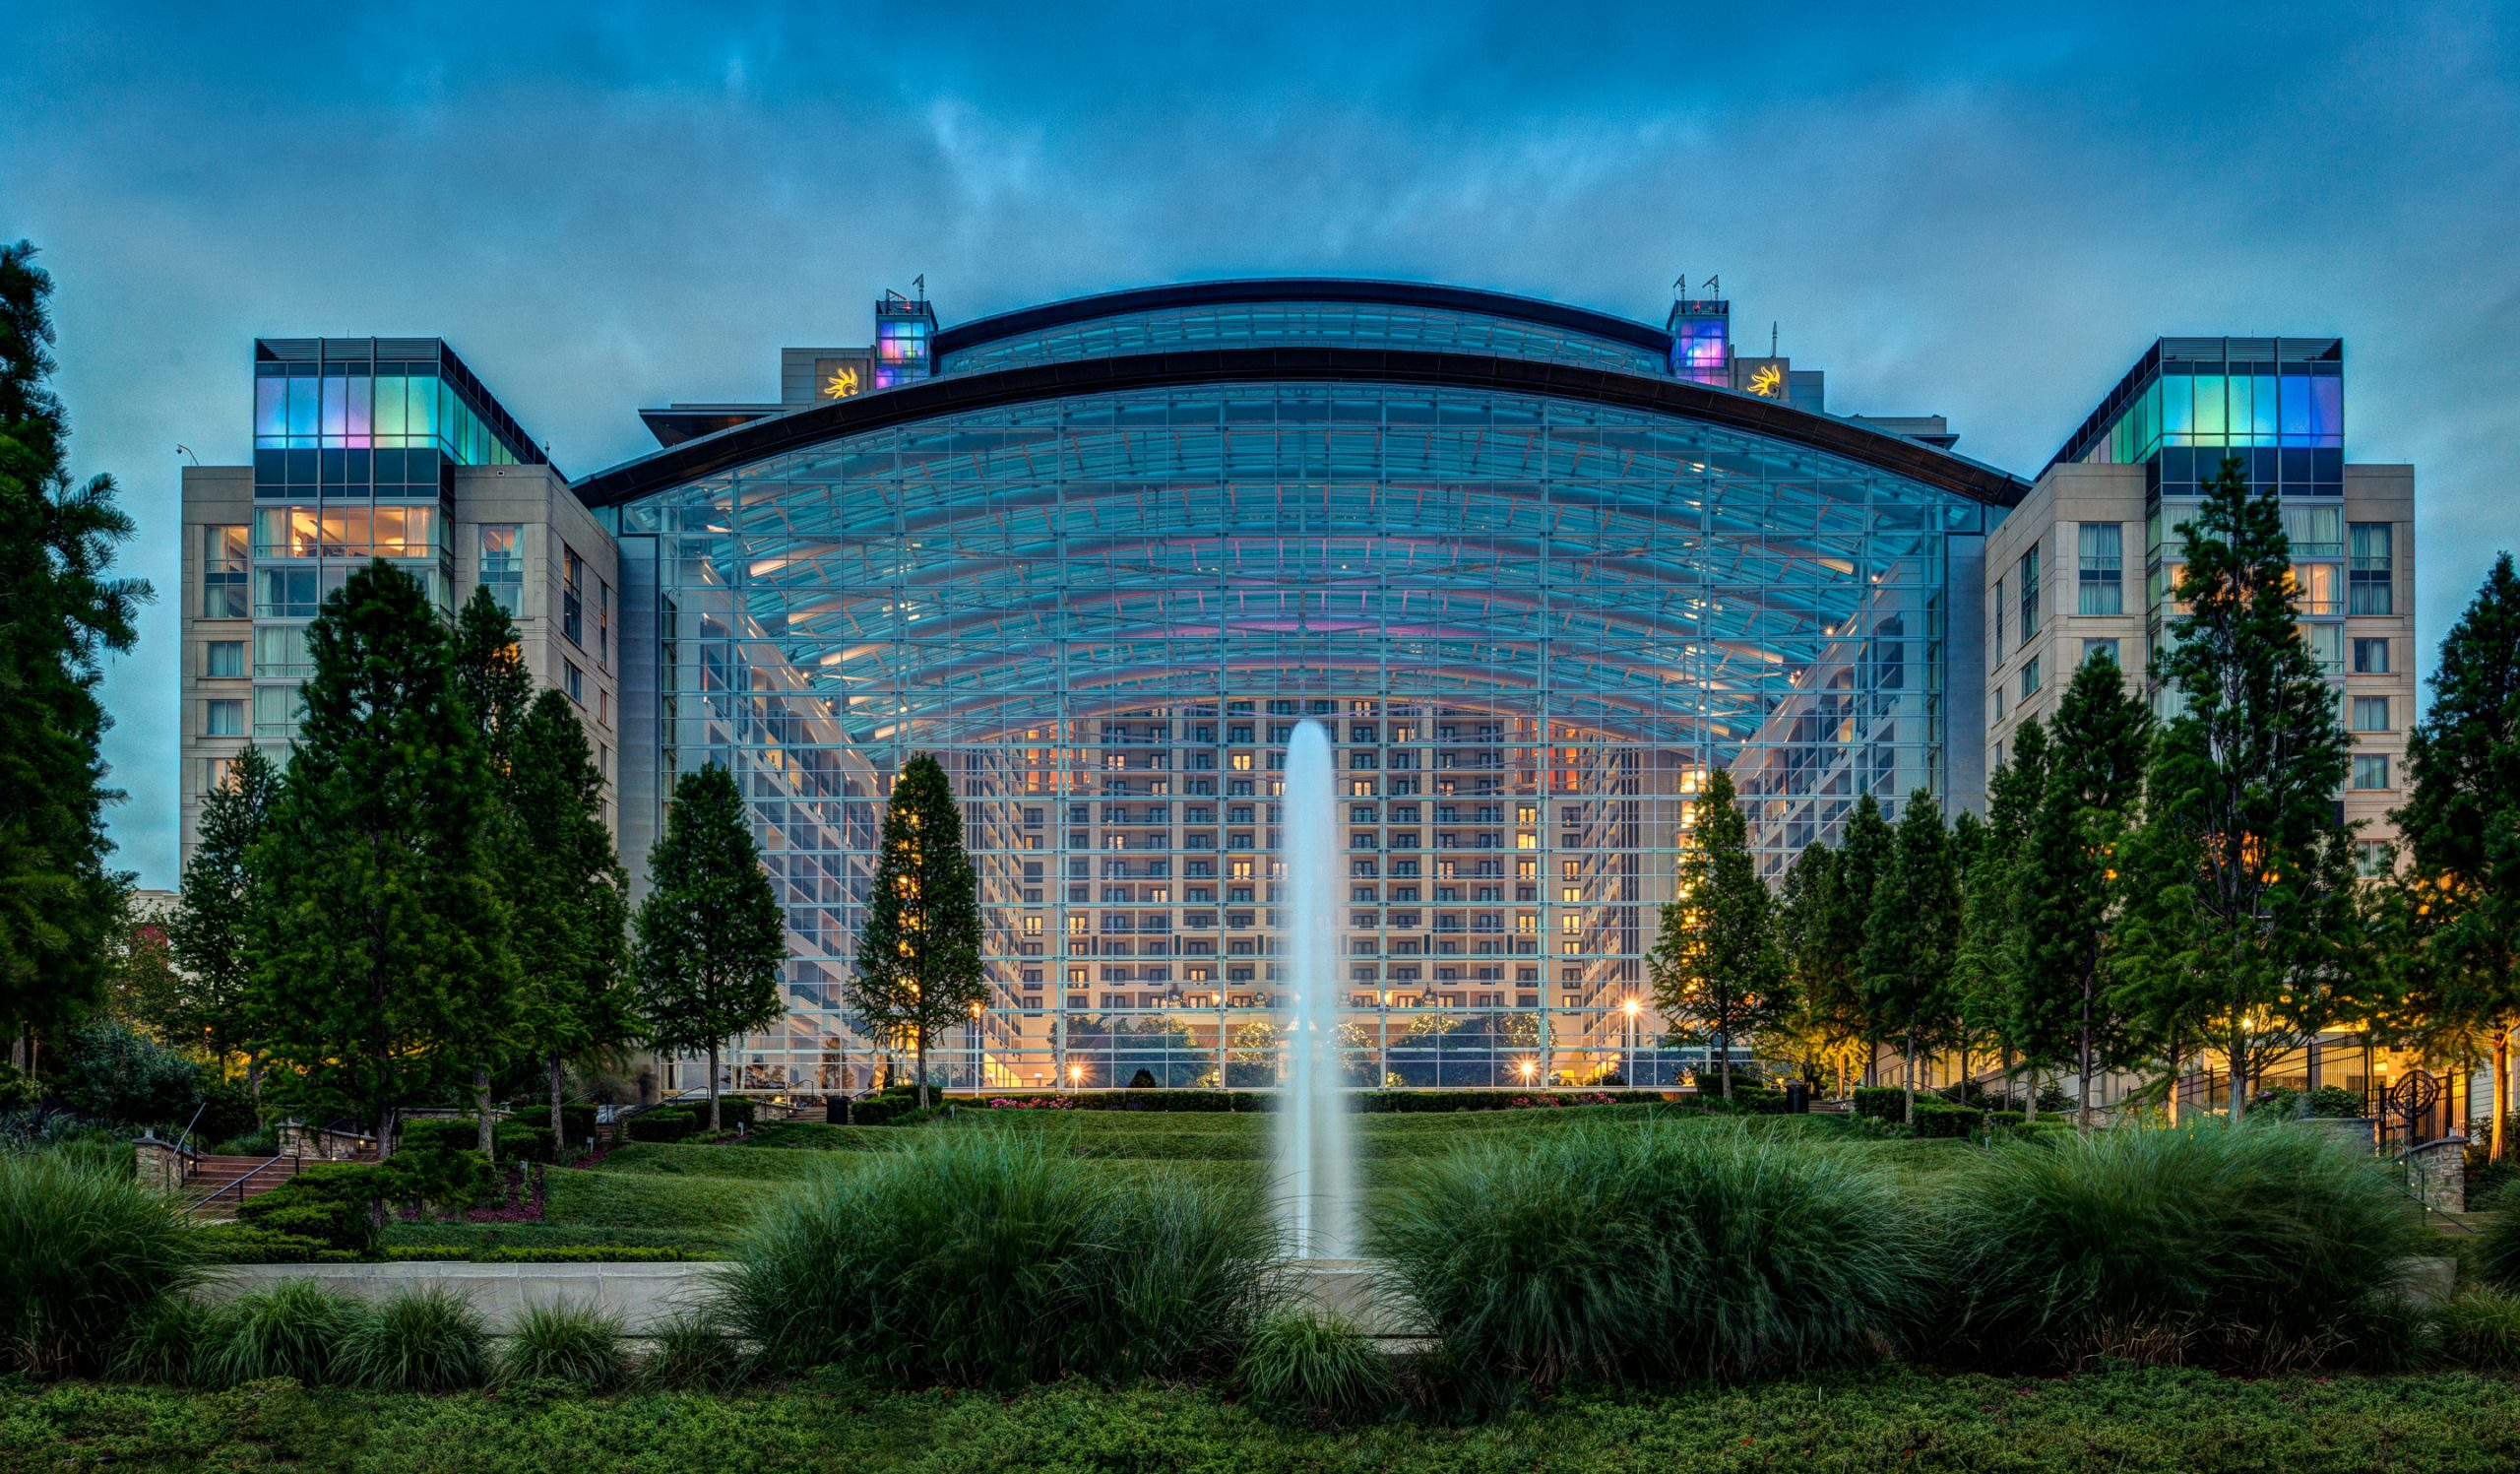 Seven Reasons to Celebrate Summer with a Trip to Gaylord National Resort